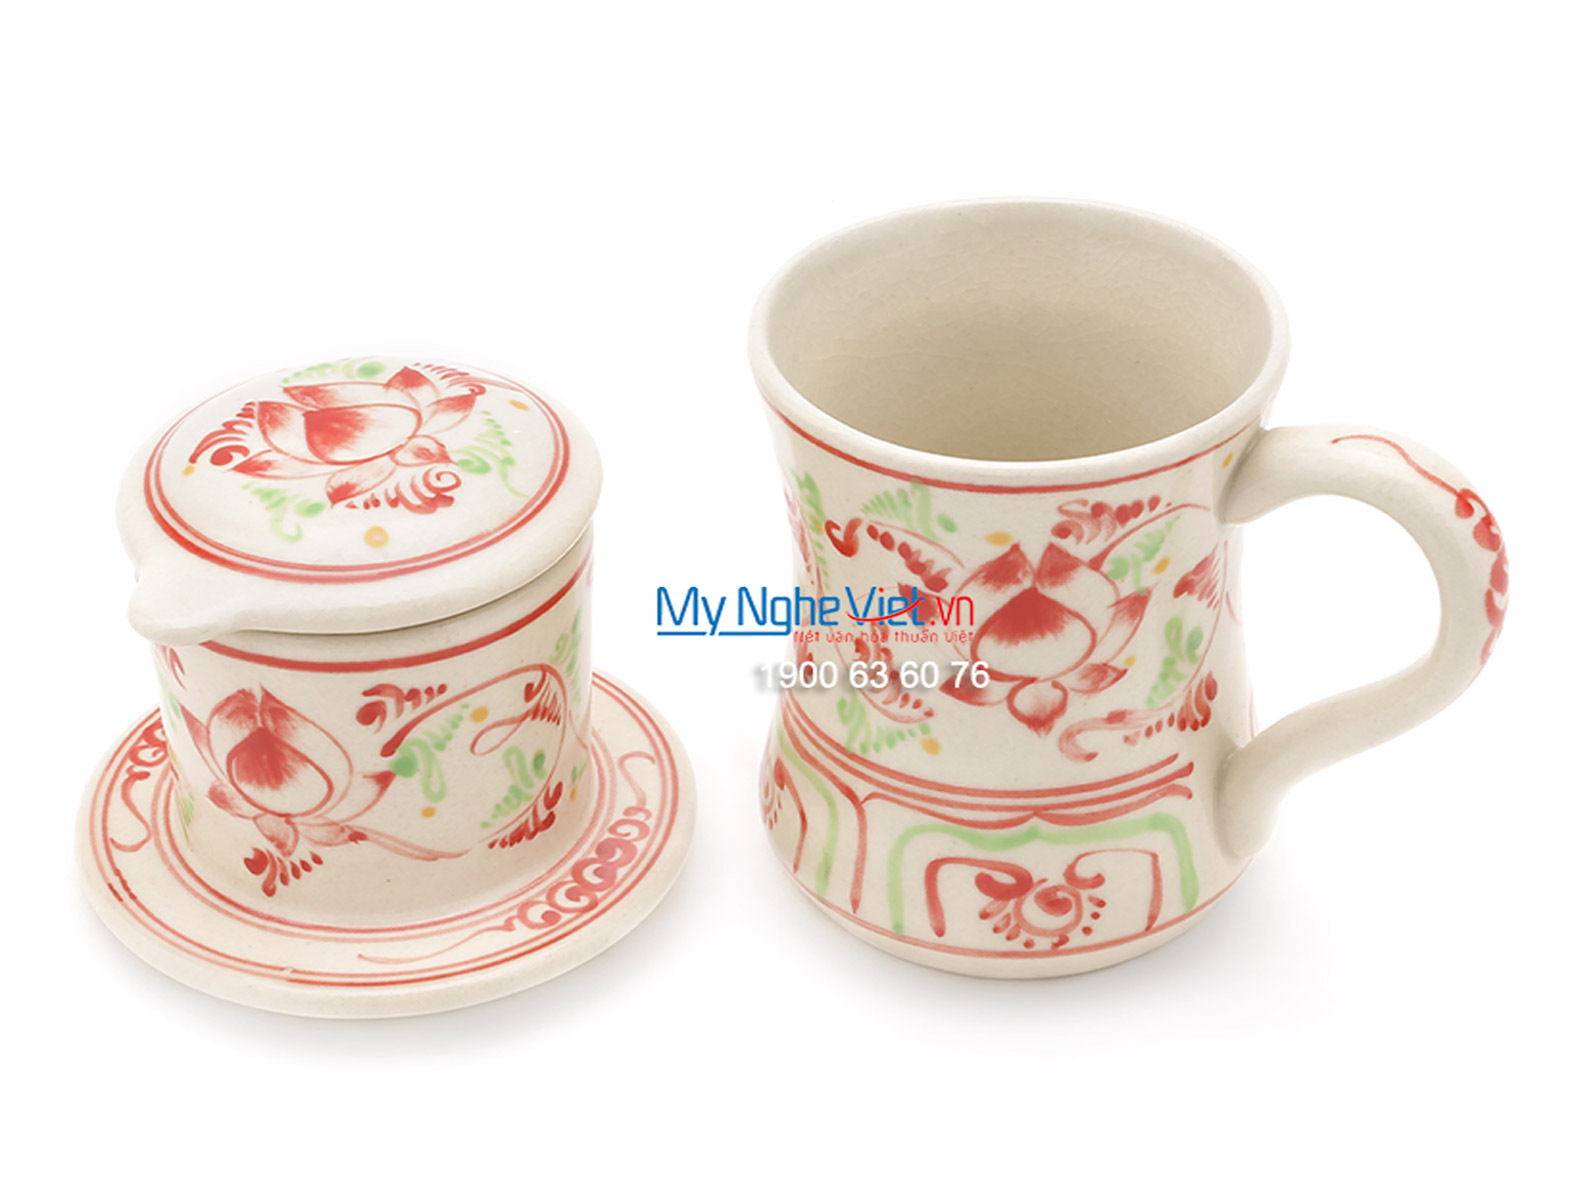 Pottery Coffee Filter with Red Lotus Flower Pattern MNV-CFC10